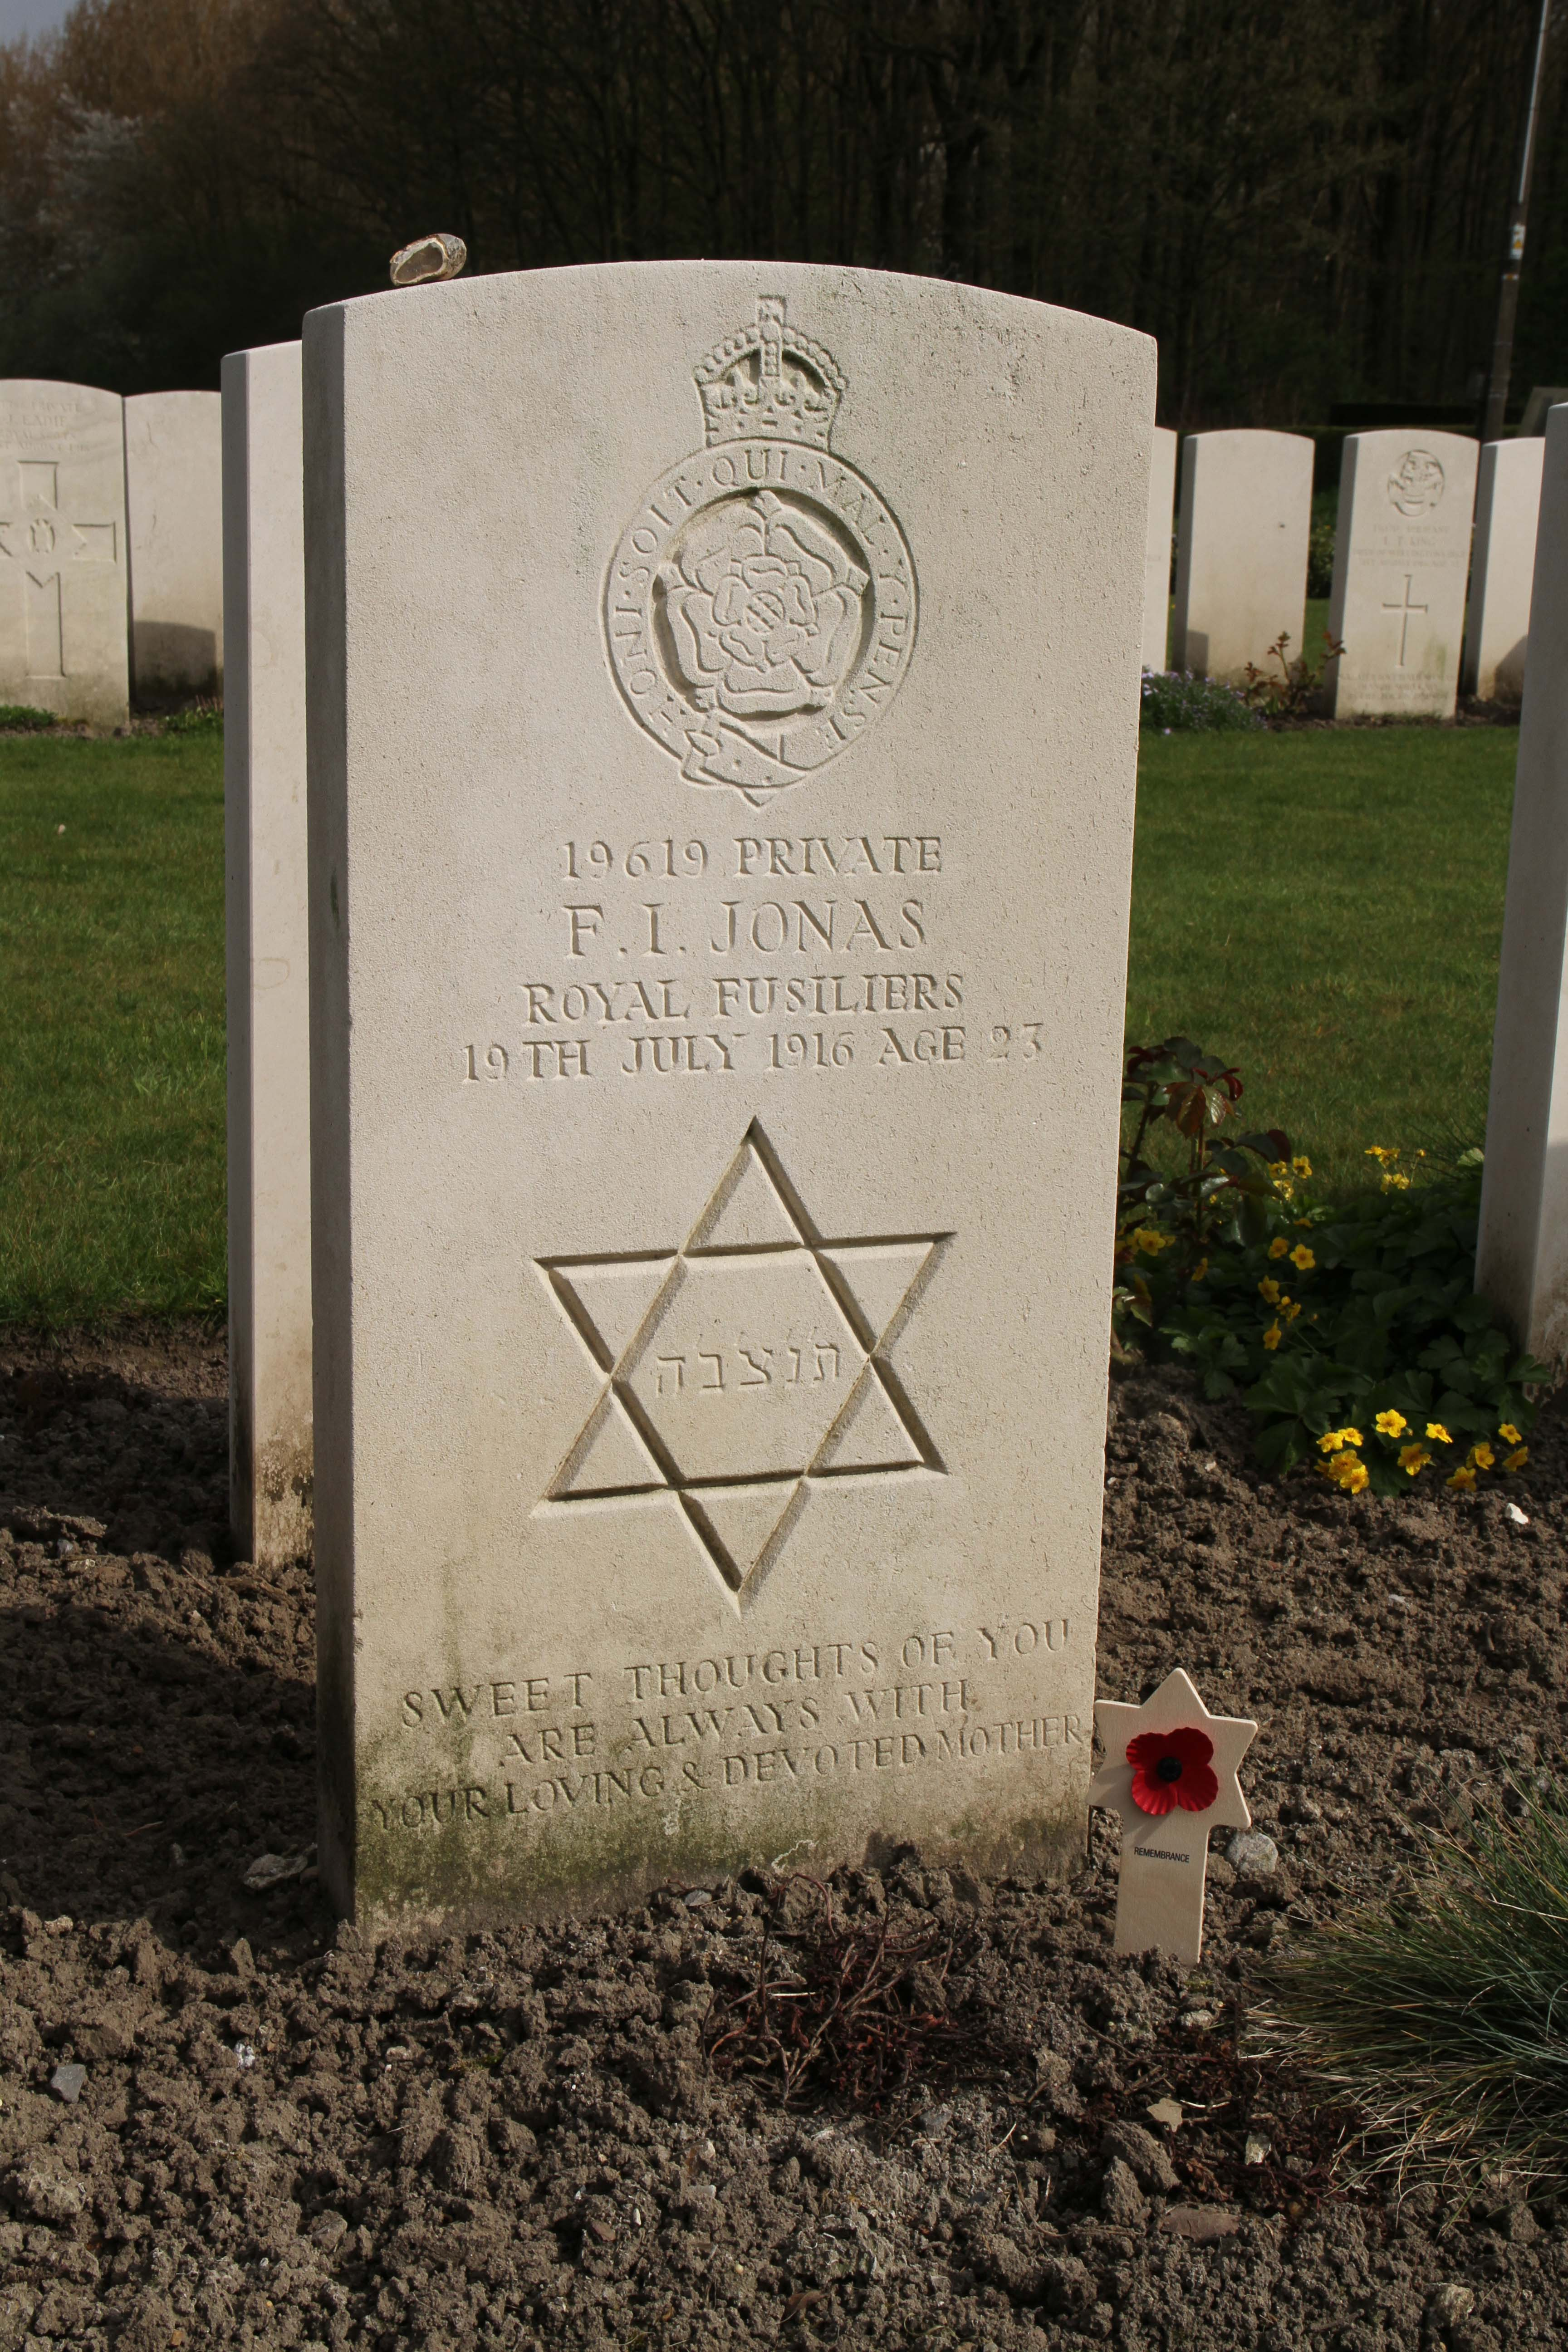 F Jonas grave and Magen David.  We Were There Too trip to Ypres, April 2017. By Alan Brill, Voluntary Photographer